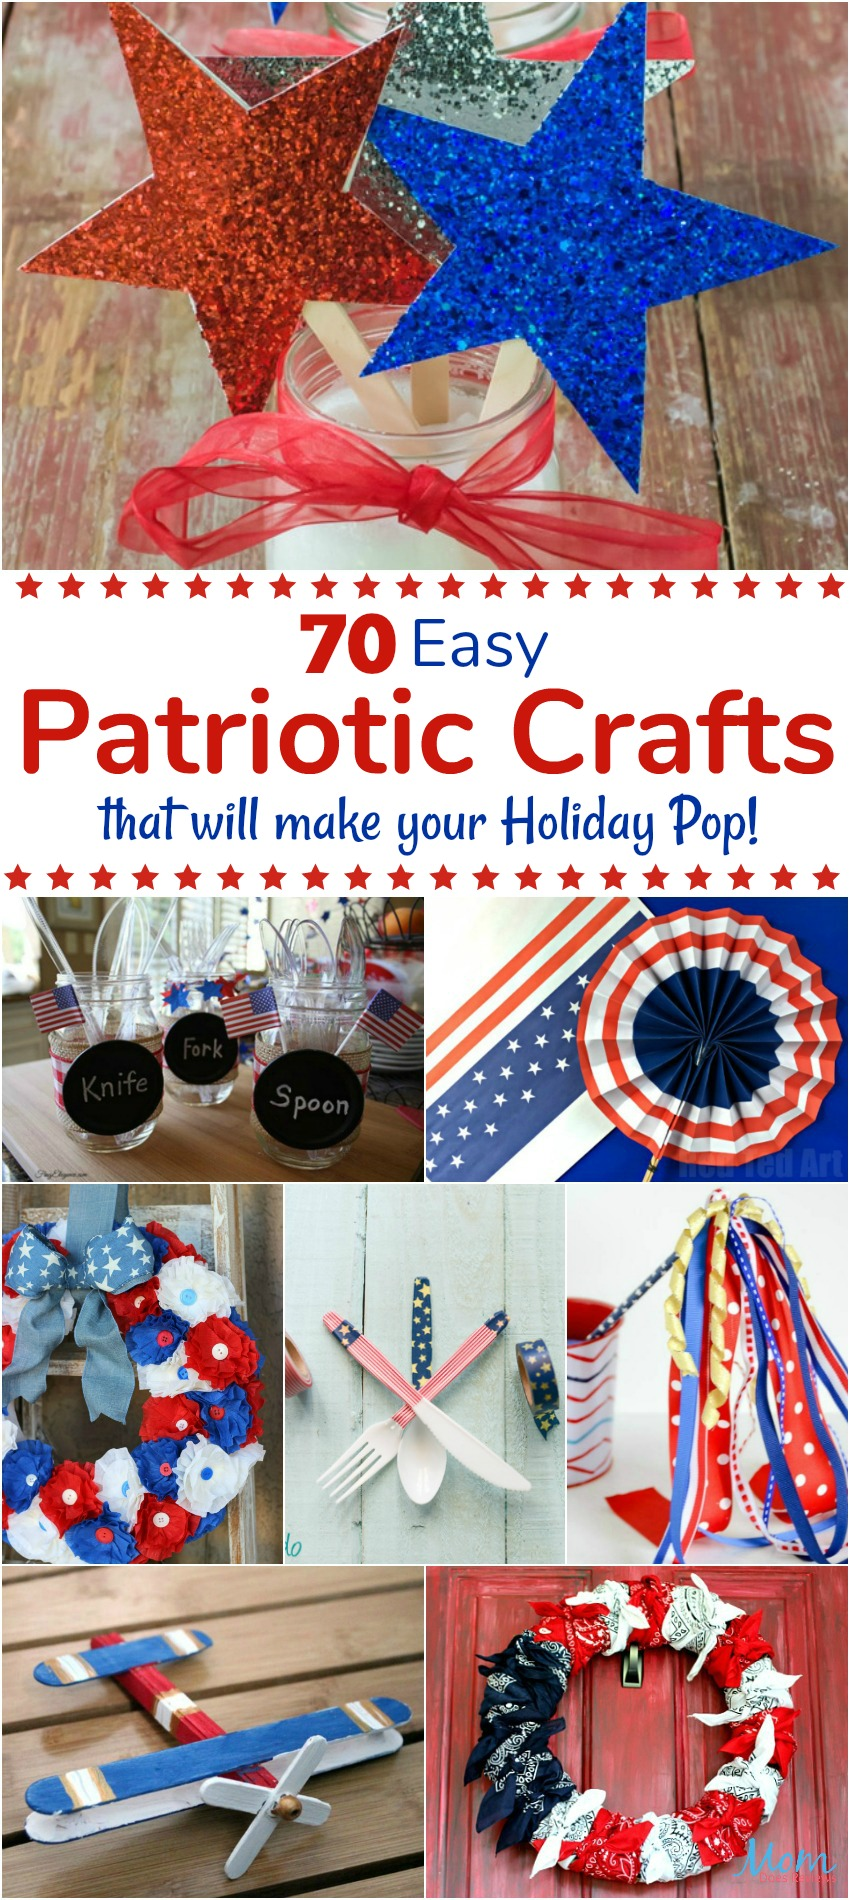 70 Easy Patriotic Crafts that will make your Holiday Pop